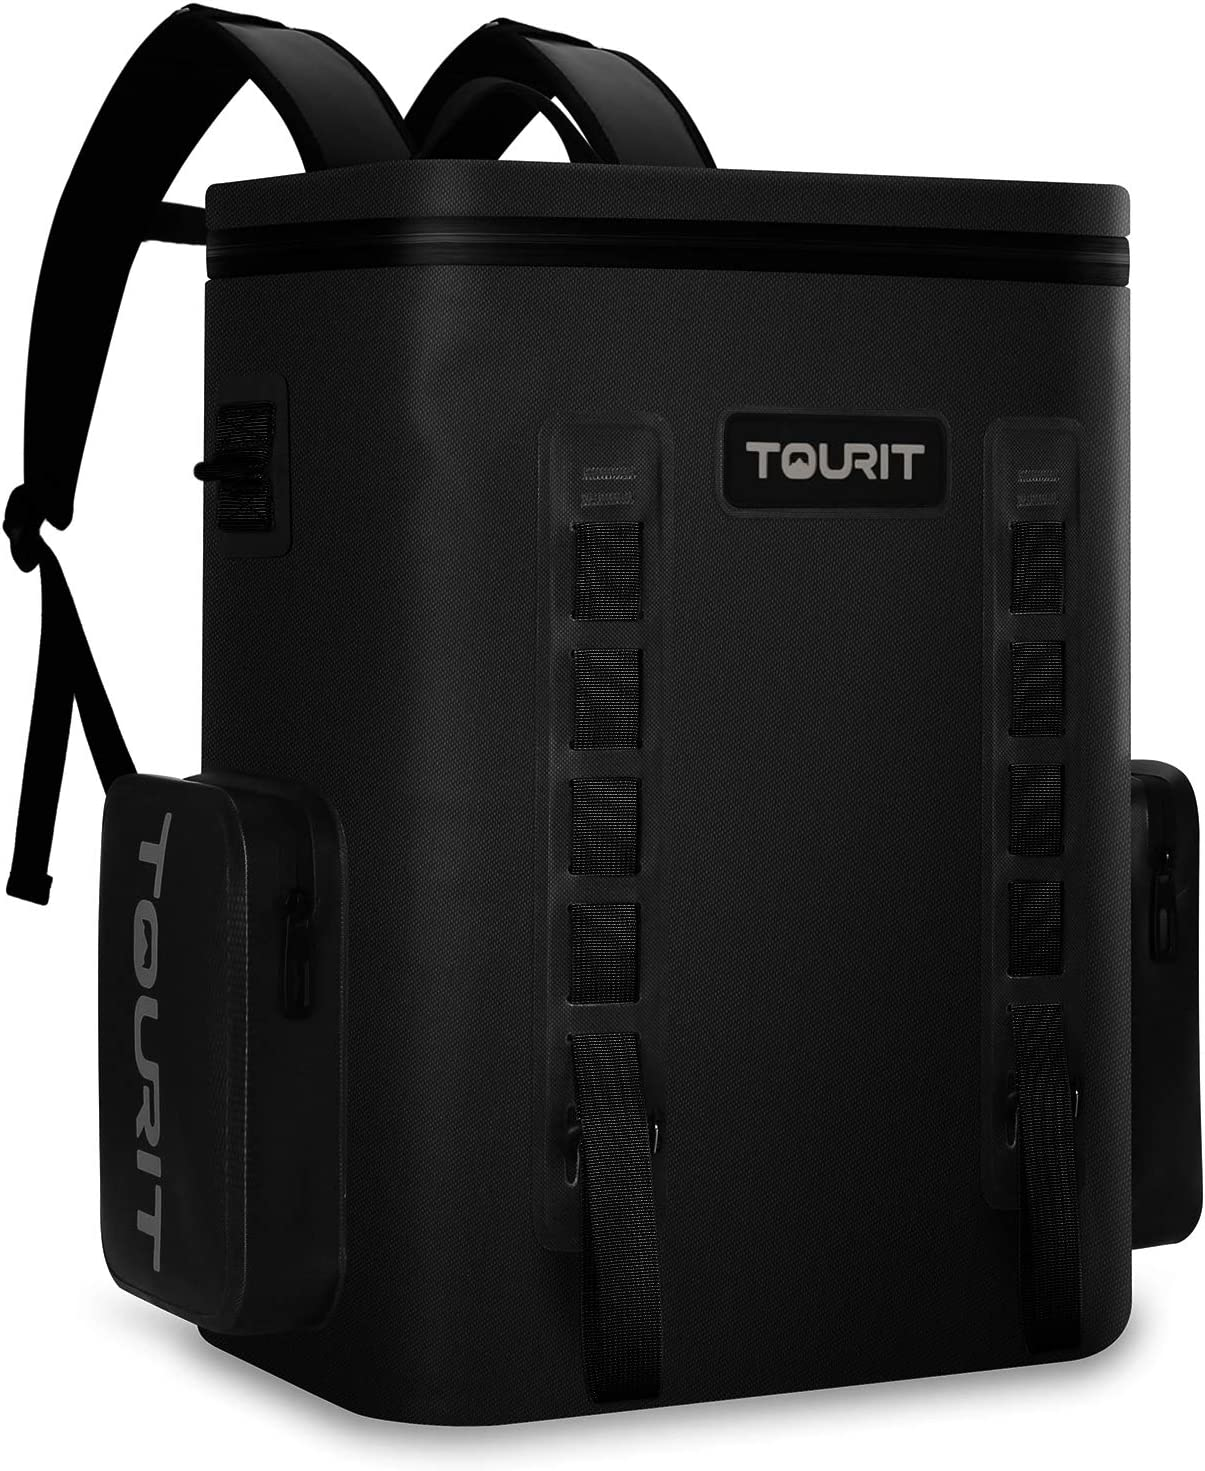 TOURIT Leak-Proof Soft Sided Cooler Backpack Waterproof Insulated Backpack Cooler Bag